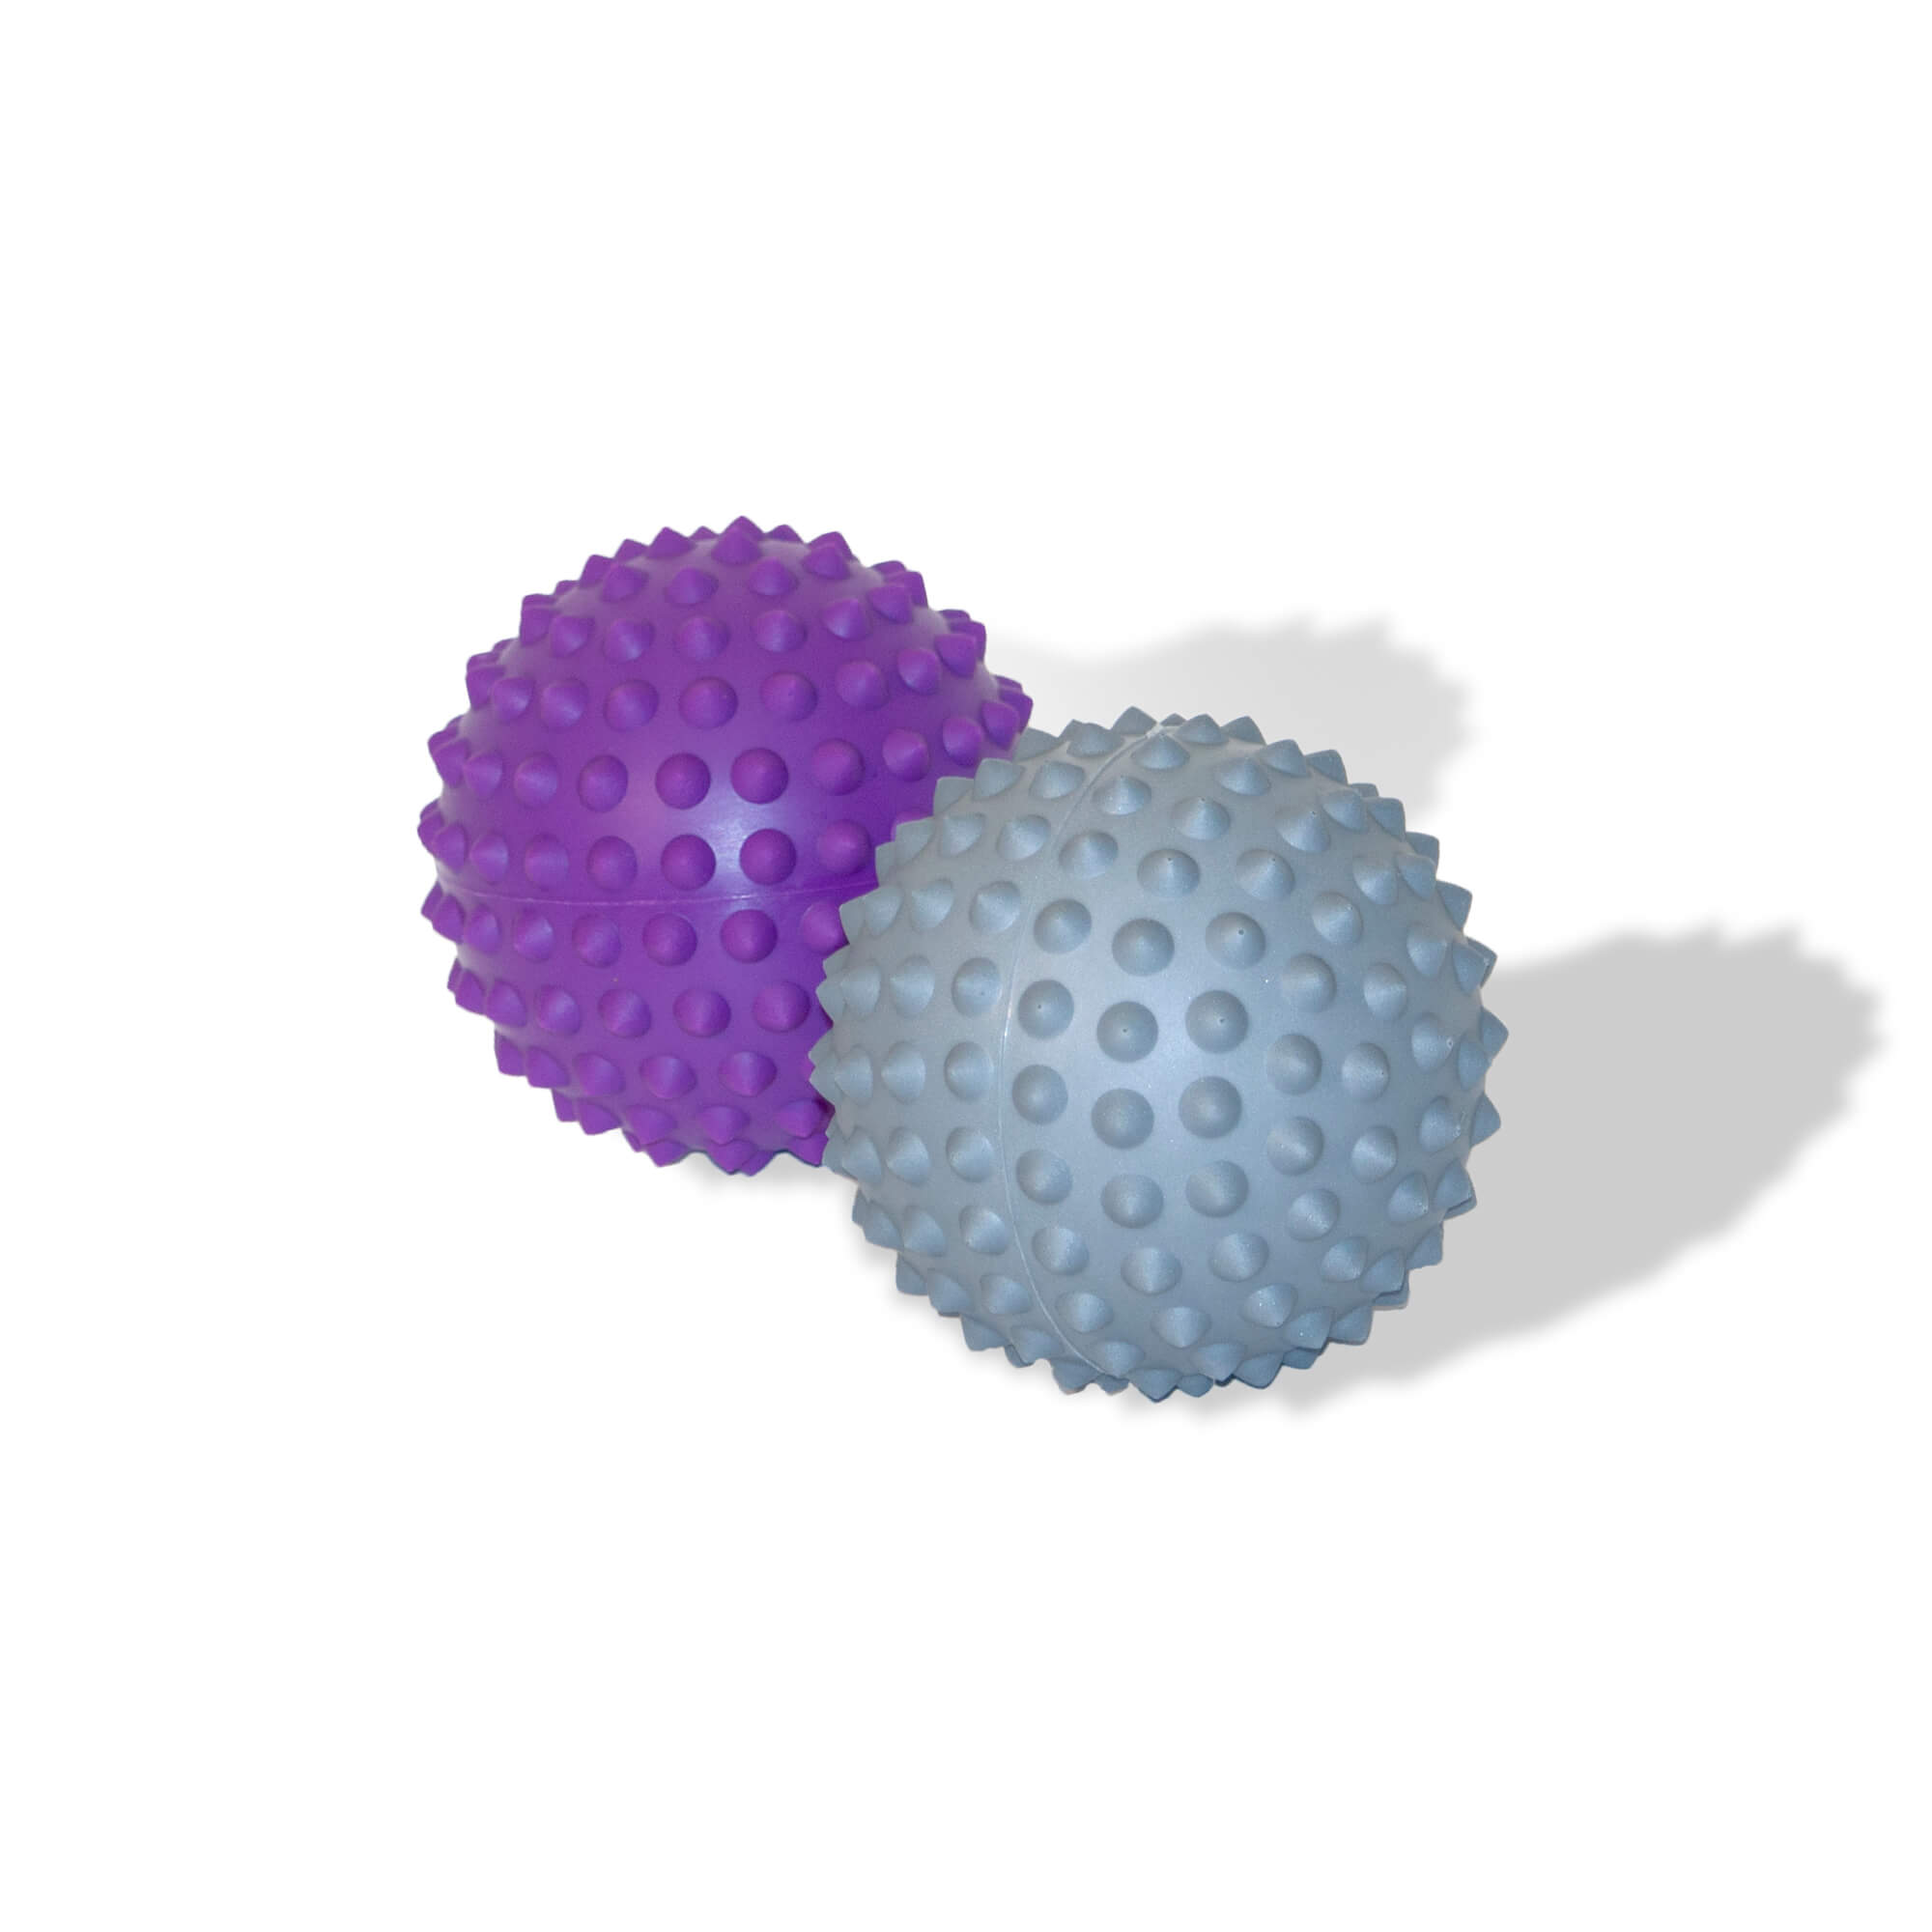 Prickle Stimulating Balls 46 ball Instructor pack-Grey/Purple